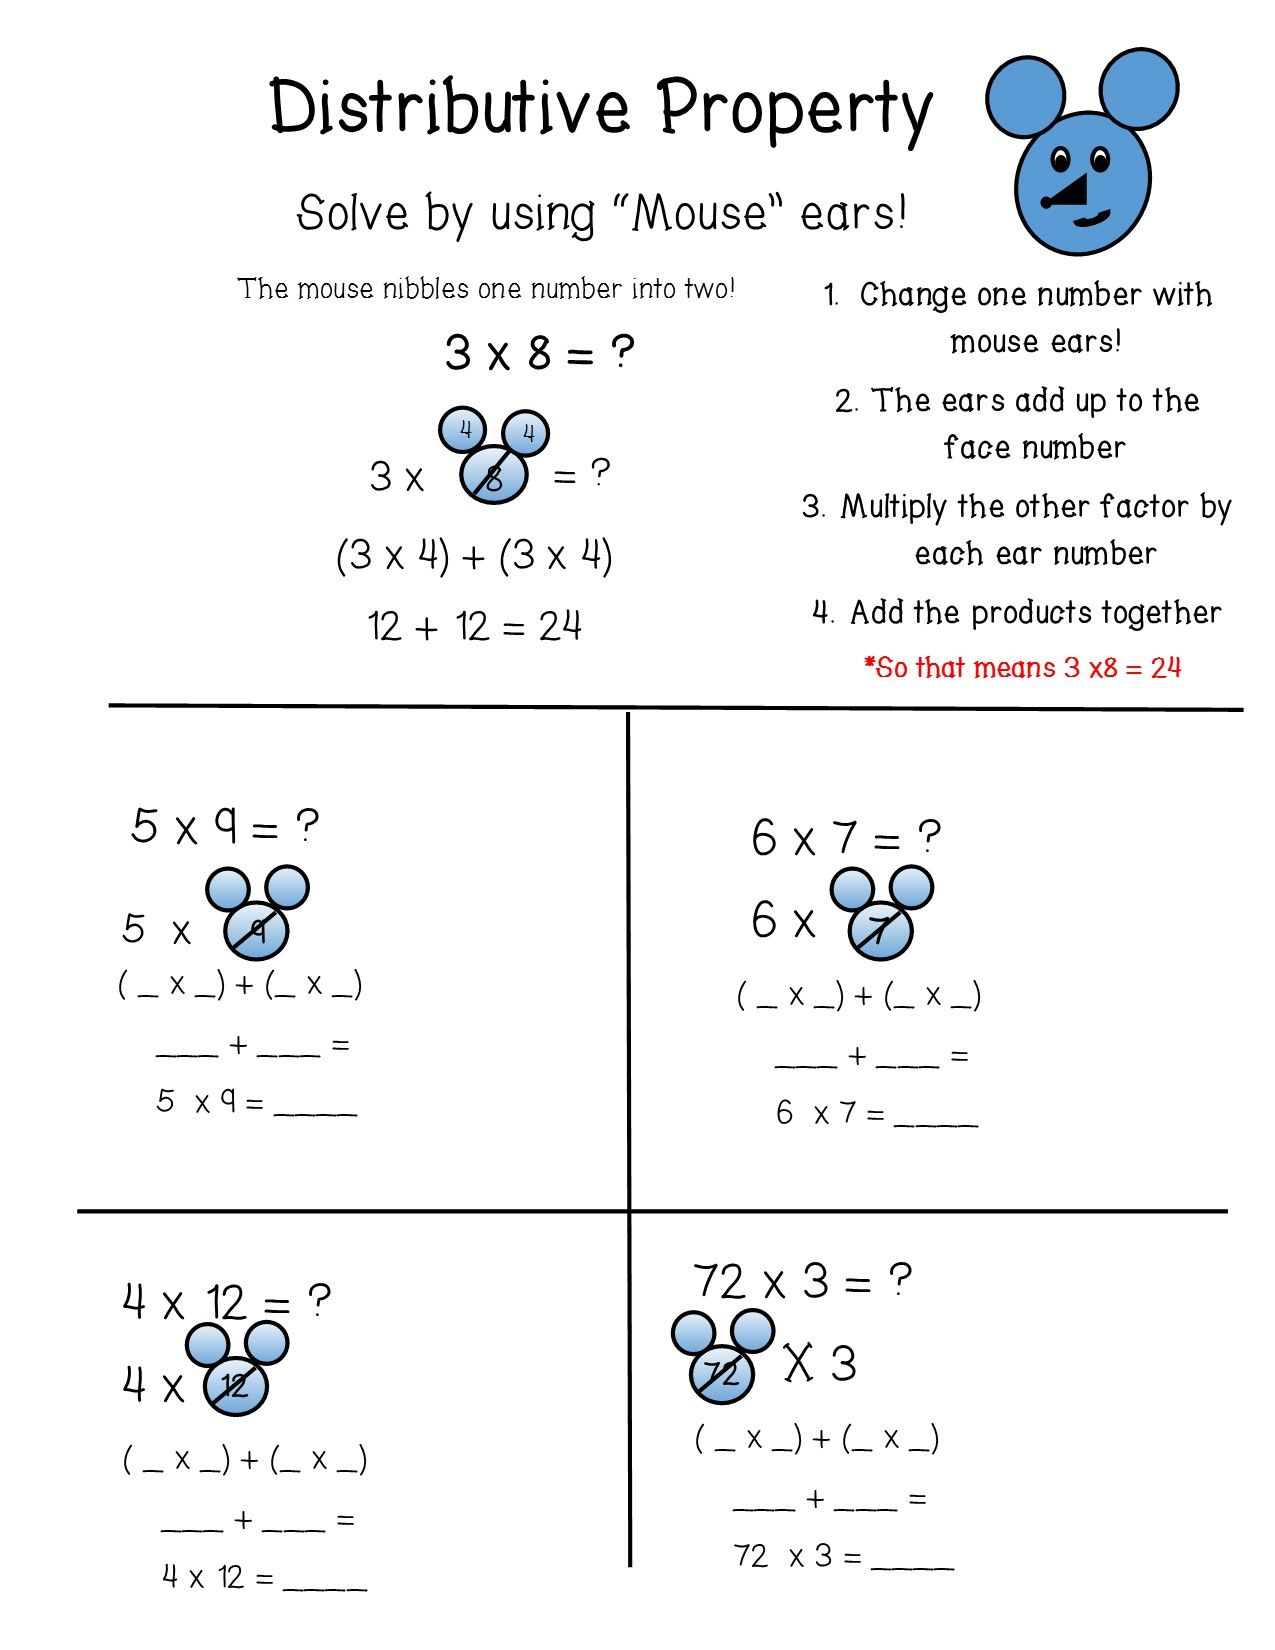 The Distributive Property Of Multiplication Is Broken Down Into Easy Steps By Using The Mouse Metho Upper Elementary Math Distributive Property Elementary Math